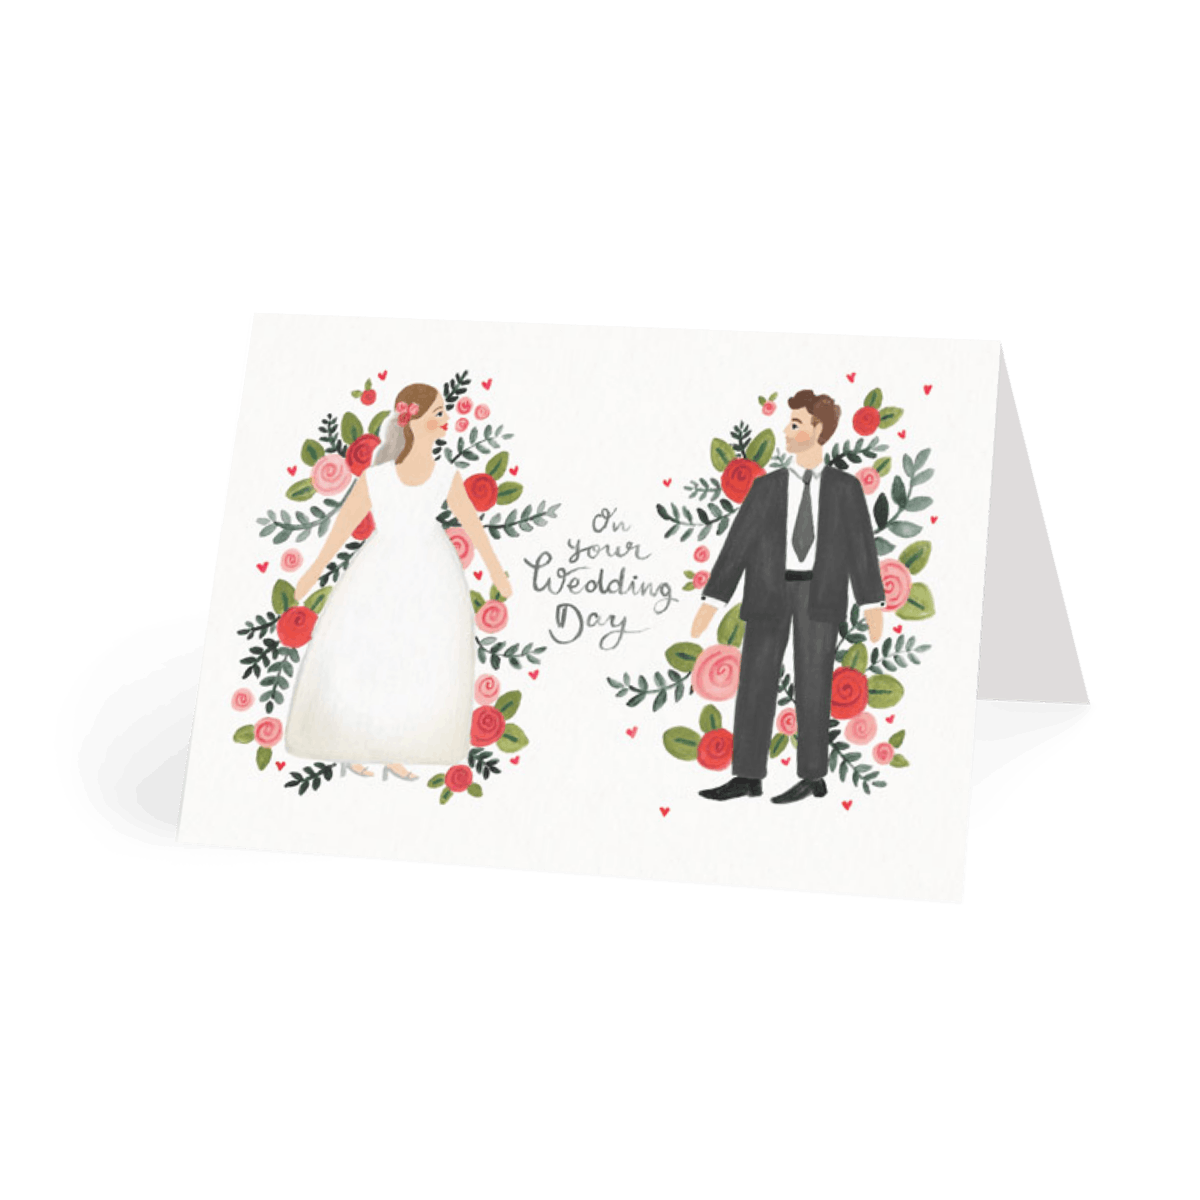 Https%3a%2f%2fwww.papier.com%2fproduct image%2f61954%2f14%2fwedding day 14696 front 1547812077.png?ixlib=rb 1.1